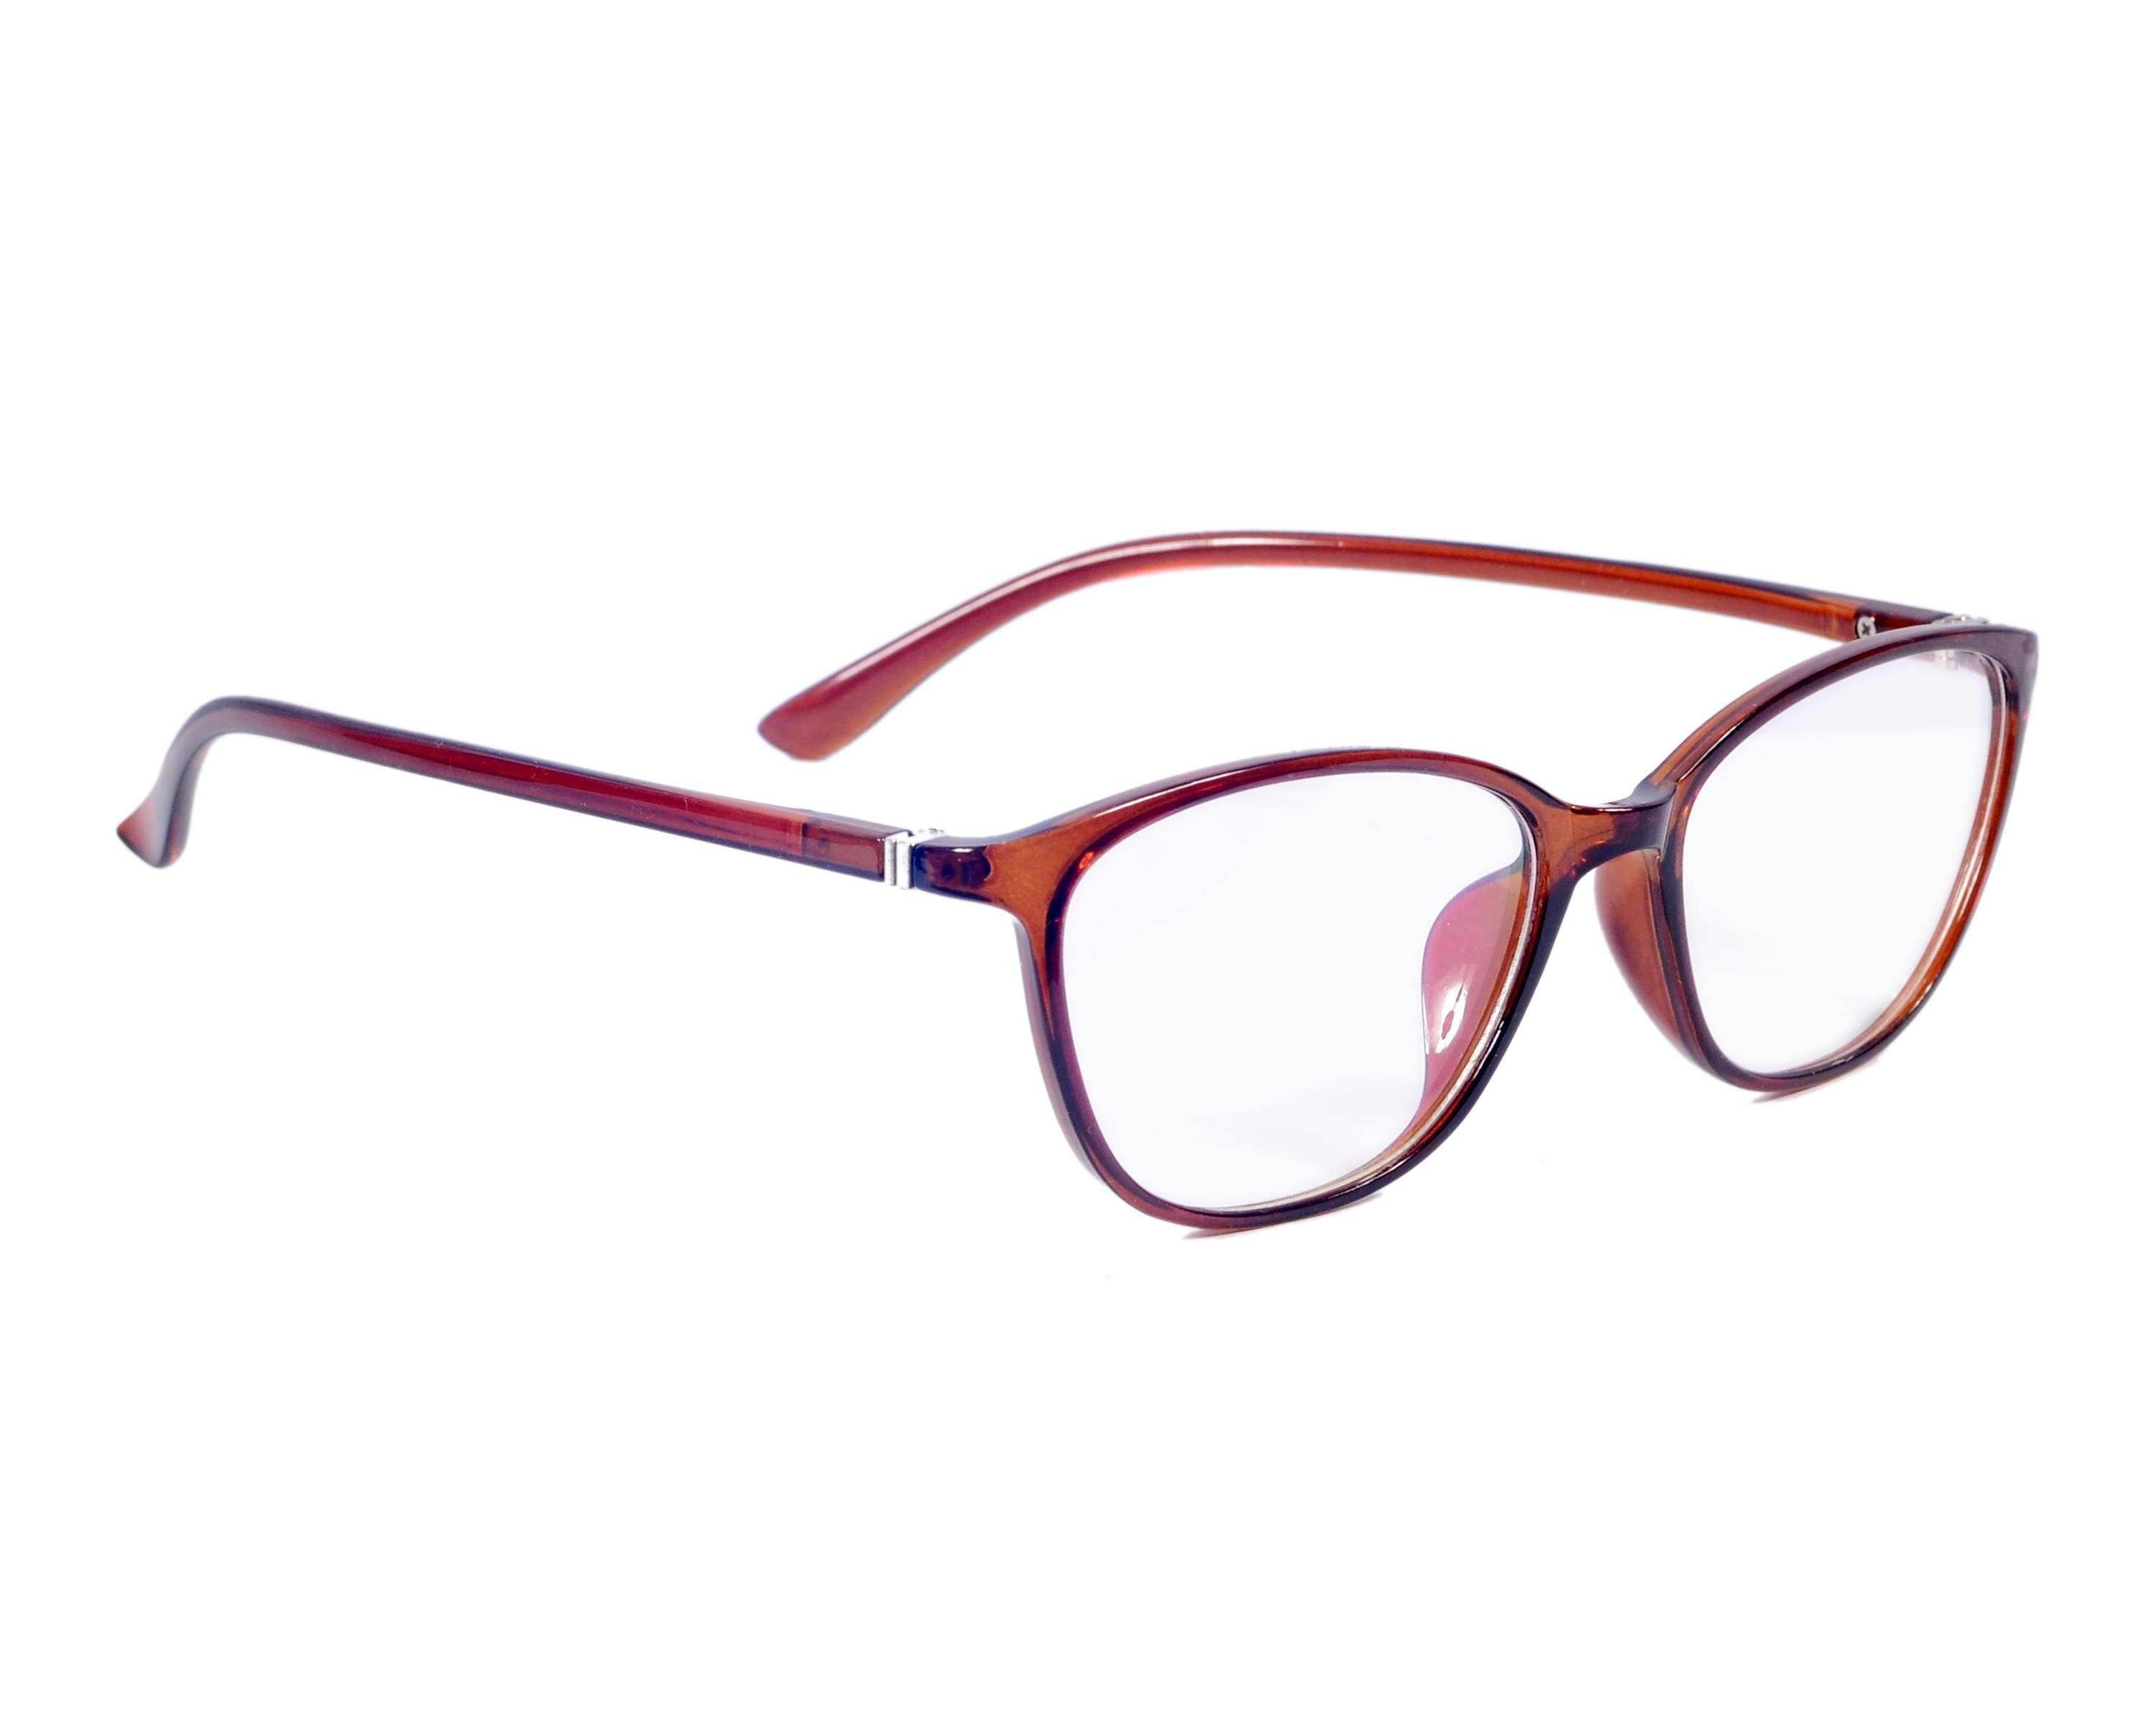 Redex Brown Rectangle Spectacle Frame 365 Buy Redex Brown